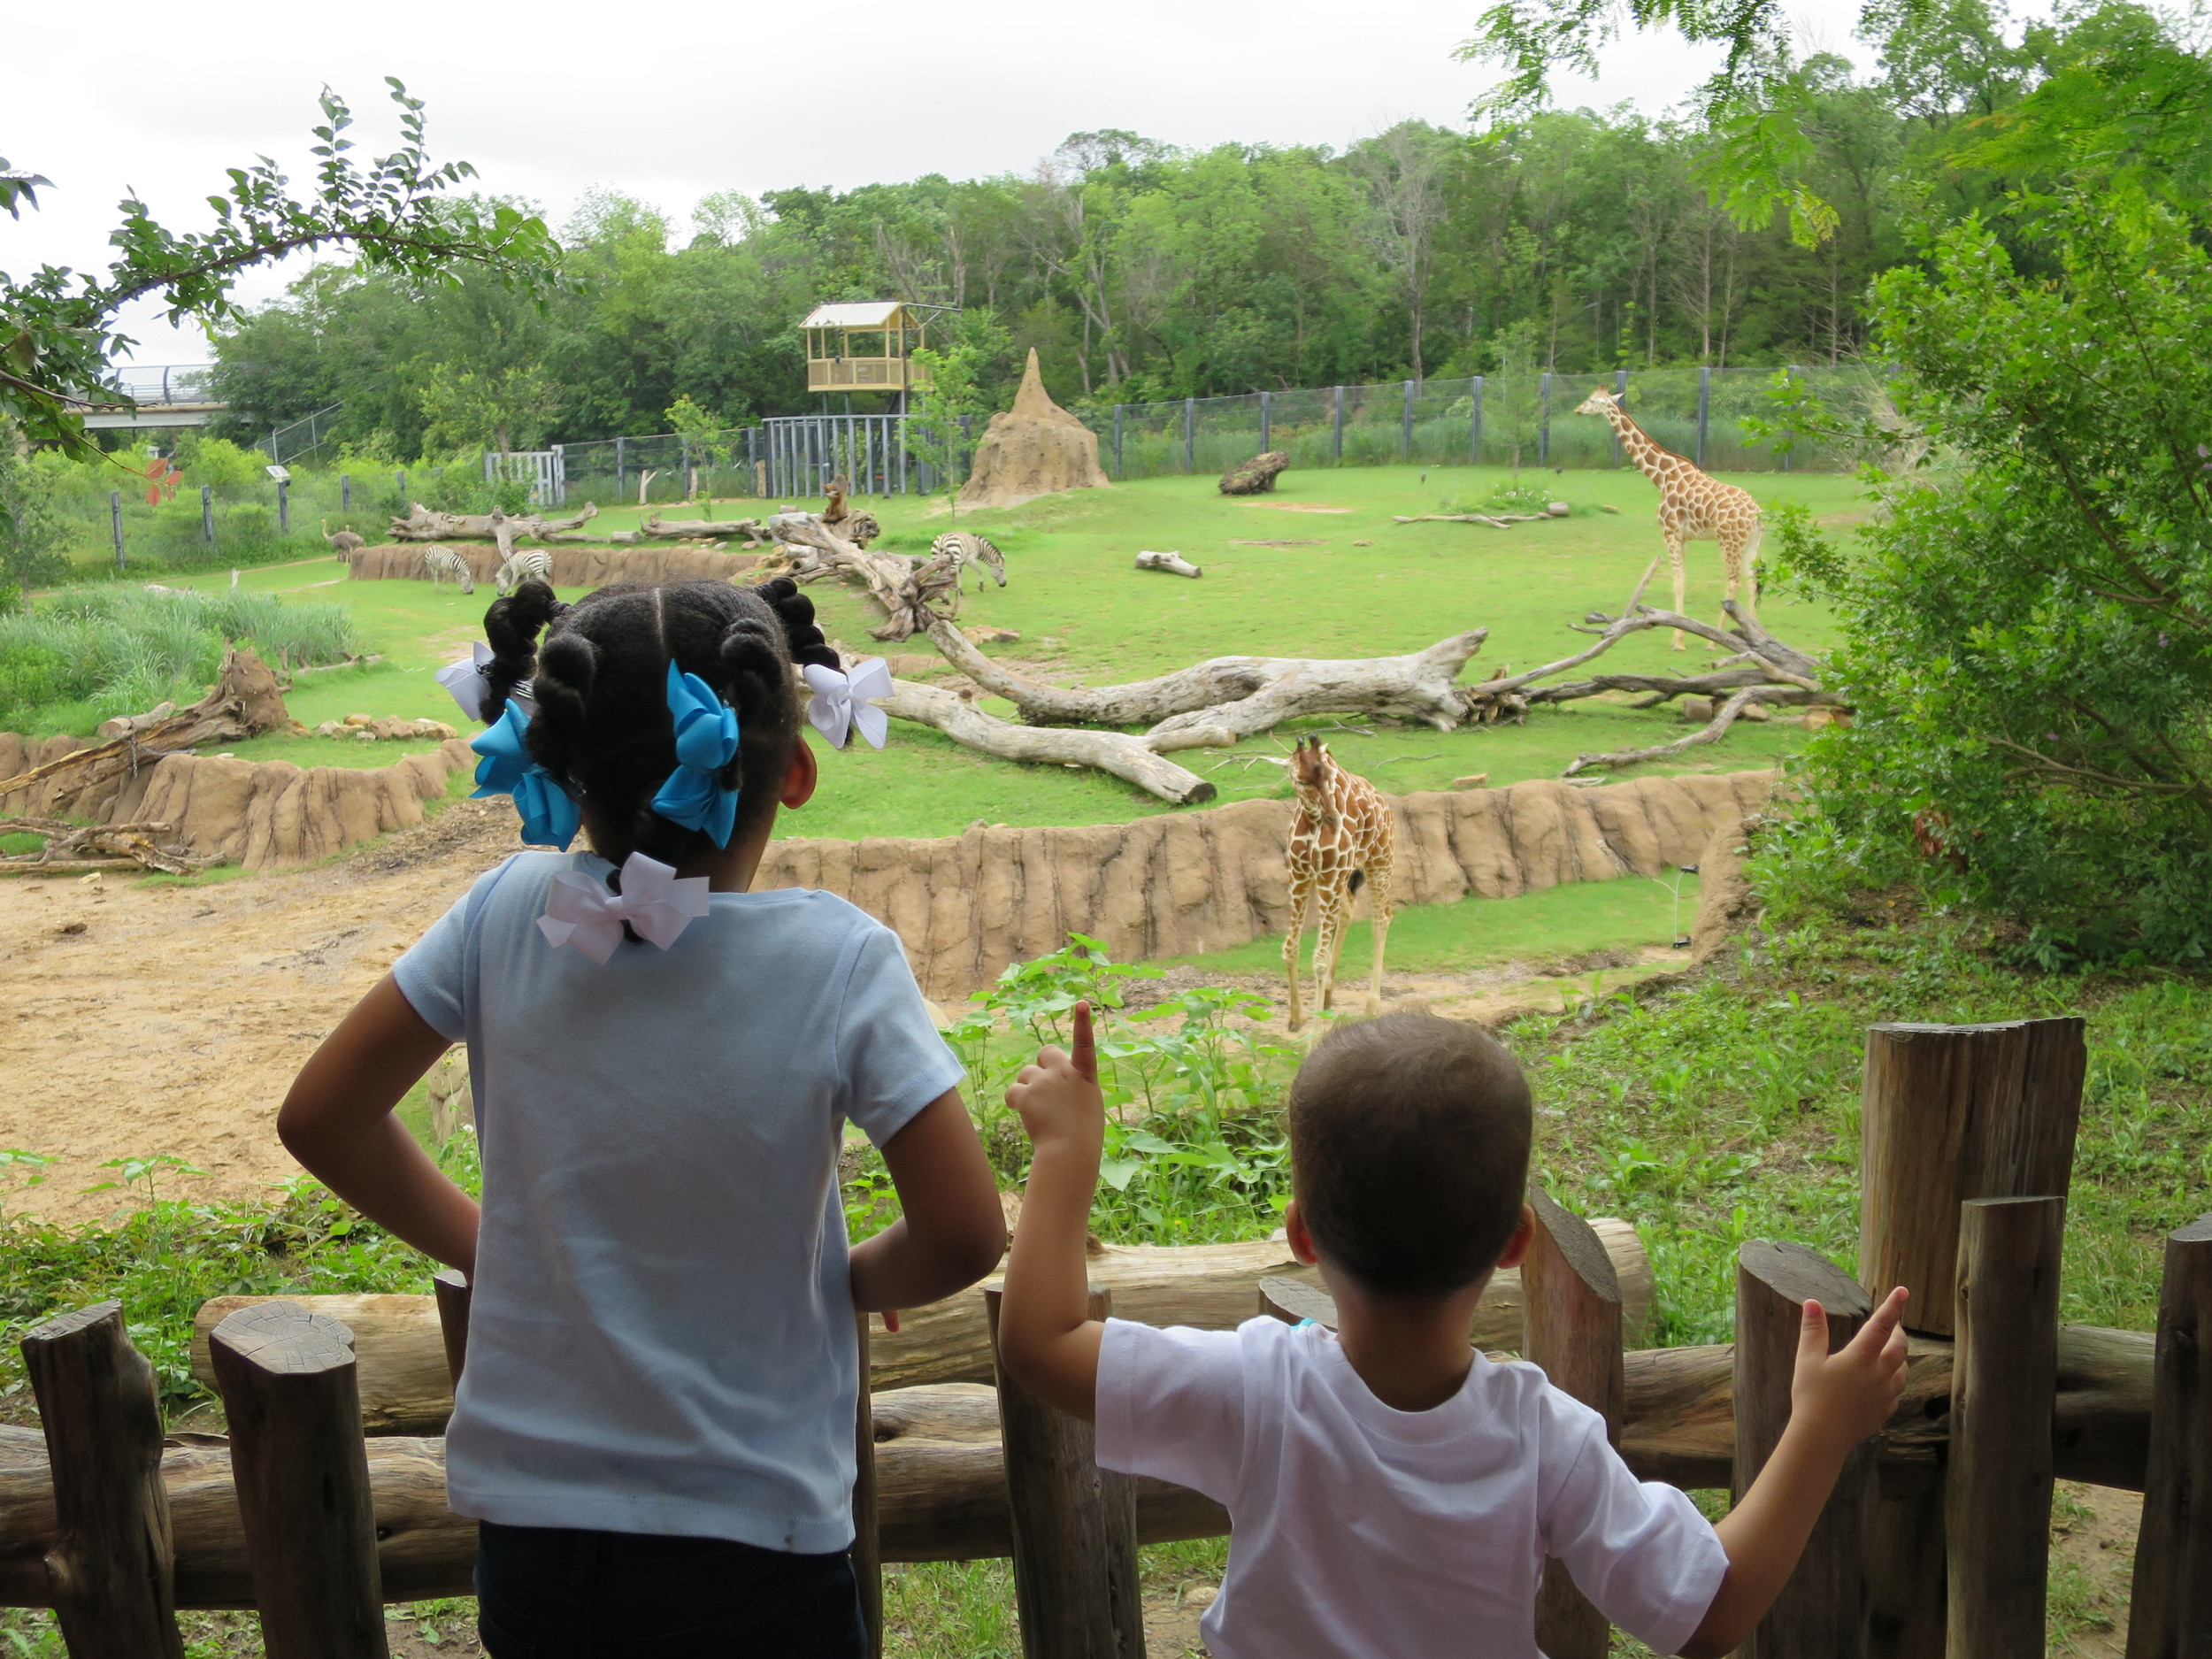 Day 305: Elliott's first trip to the zoo in over a year. He was amazed to see all the animals from his books at home.